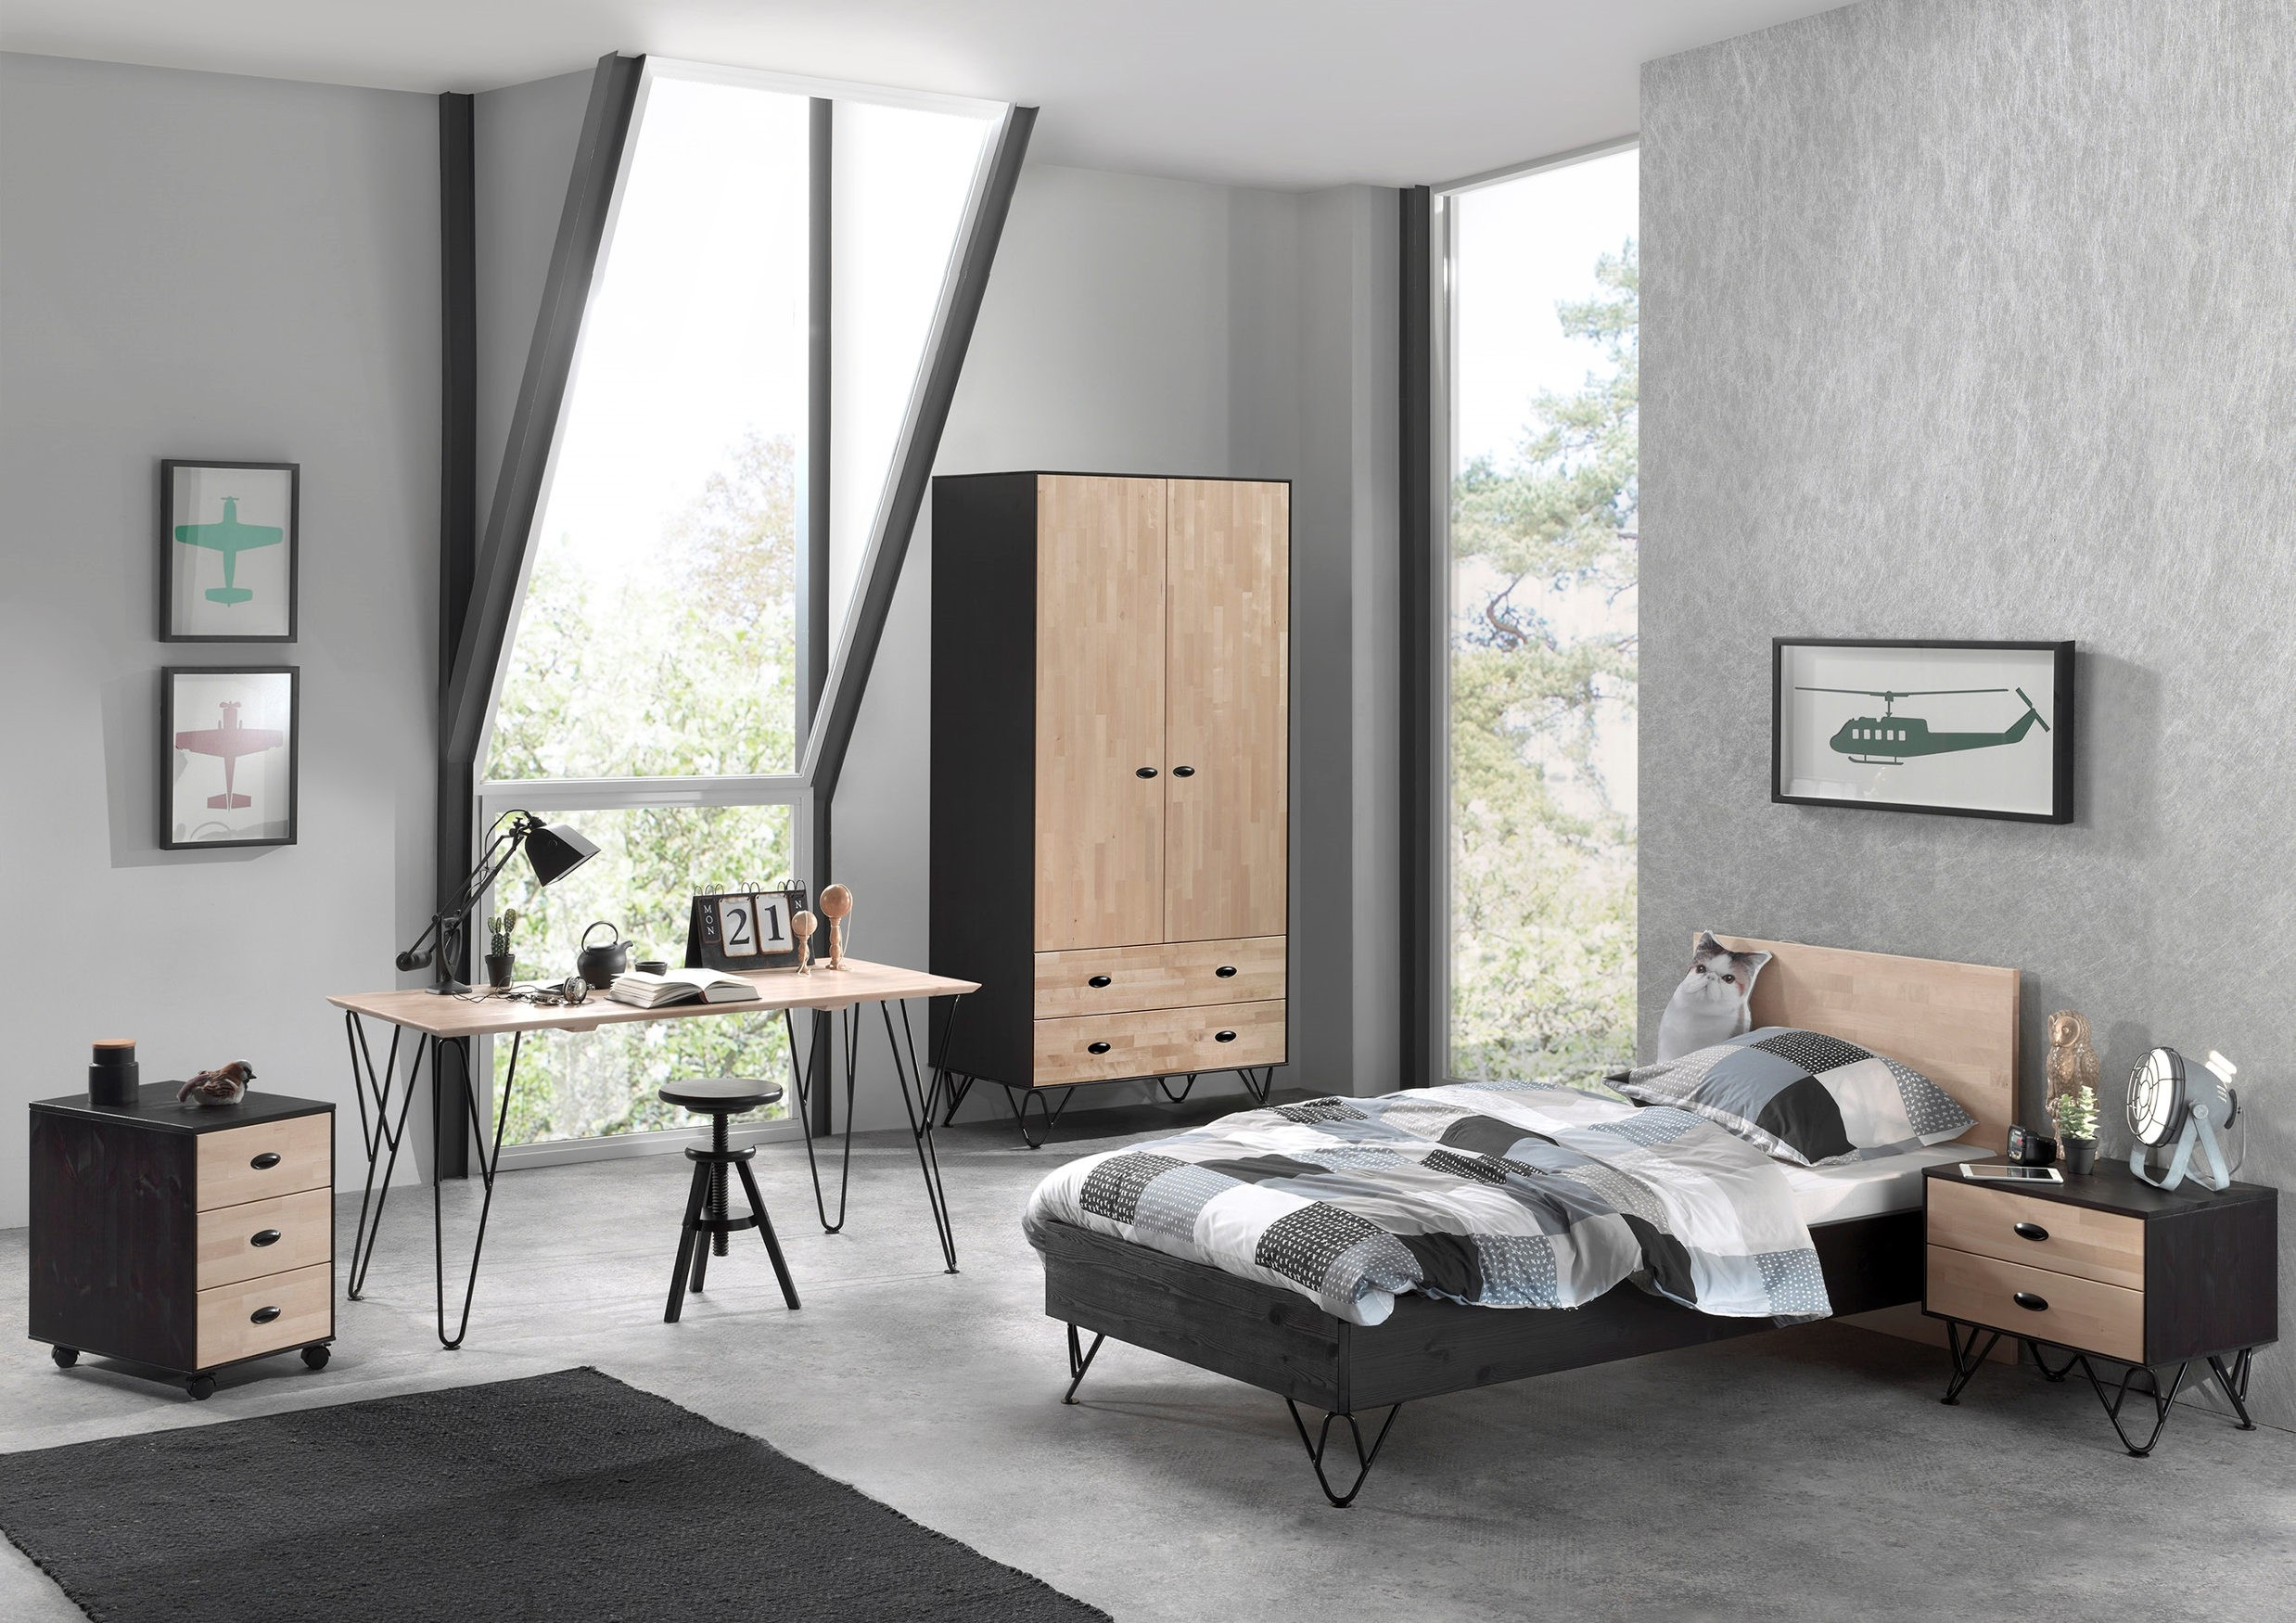 kleiderschrank william 2 t rig birke natur schwarz kinder jugendzimmer kleiderschr nke. Black Bedroom Furniture Sets. Home Design Ideas